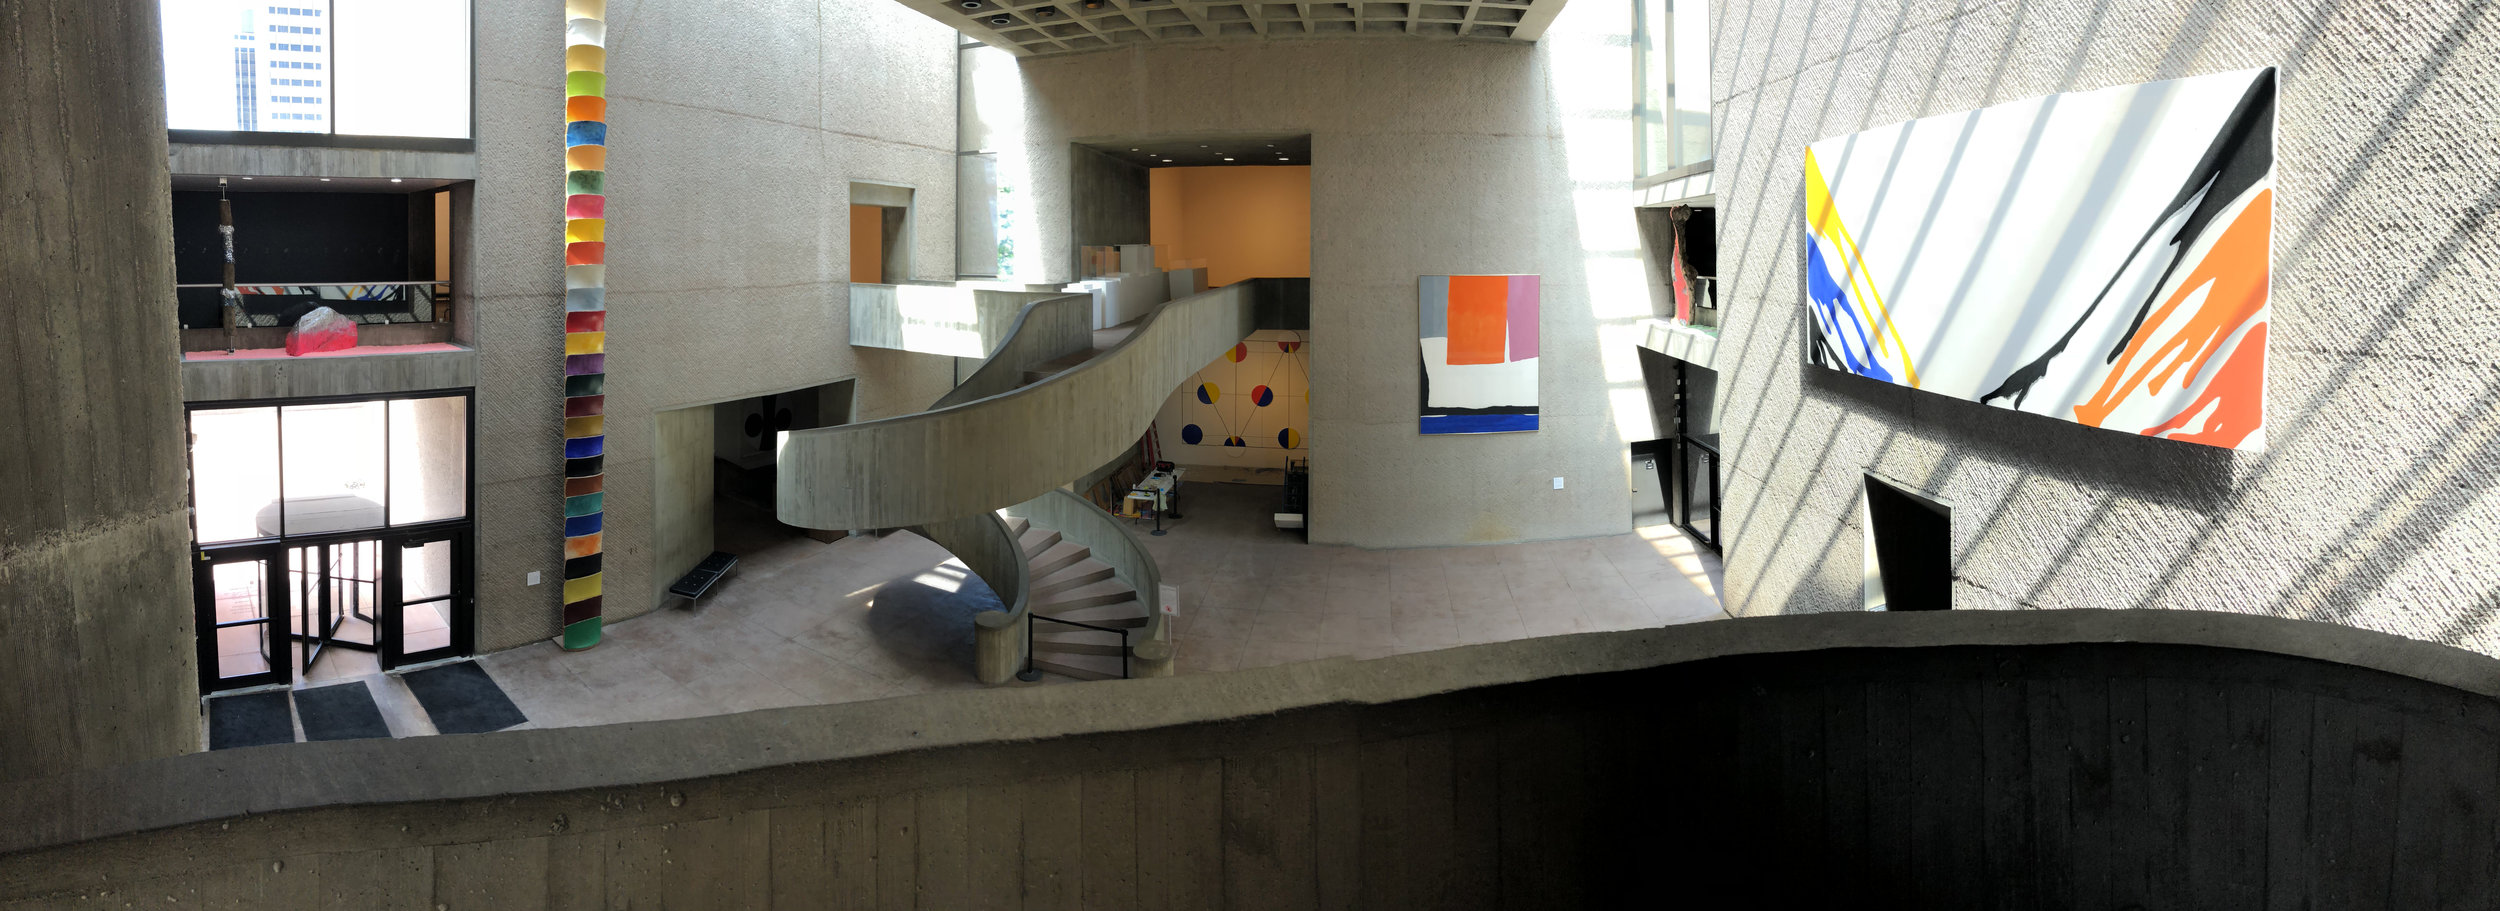 Everson Museum Sculpture Court – 2018